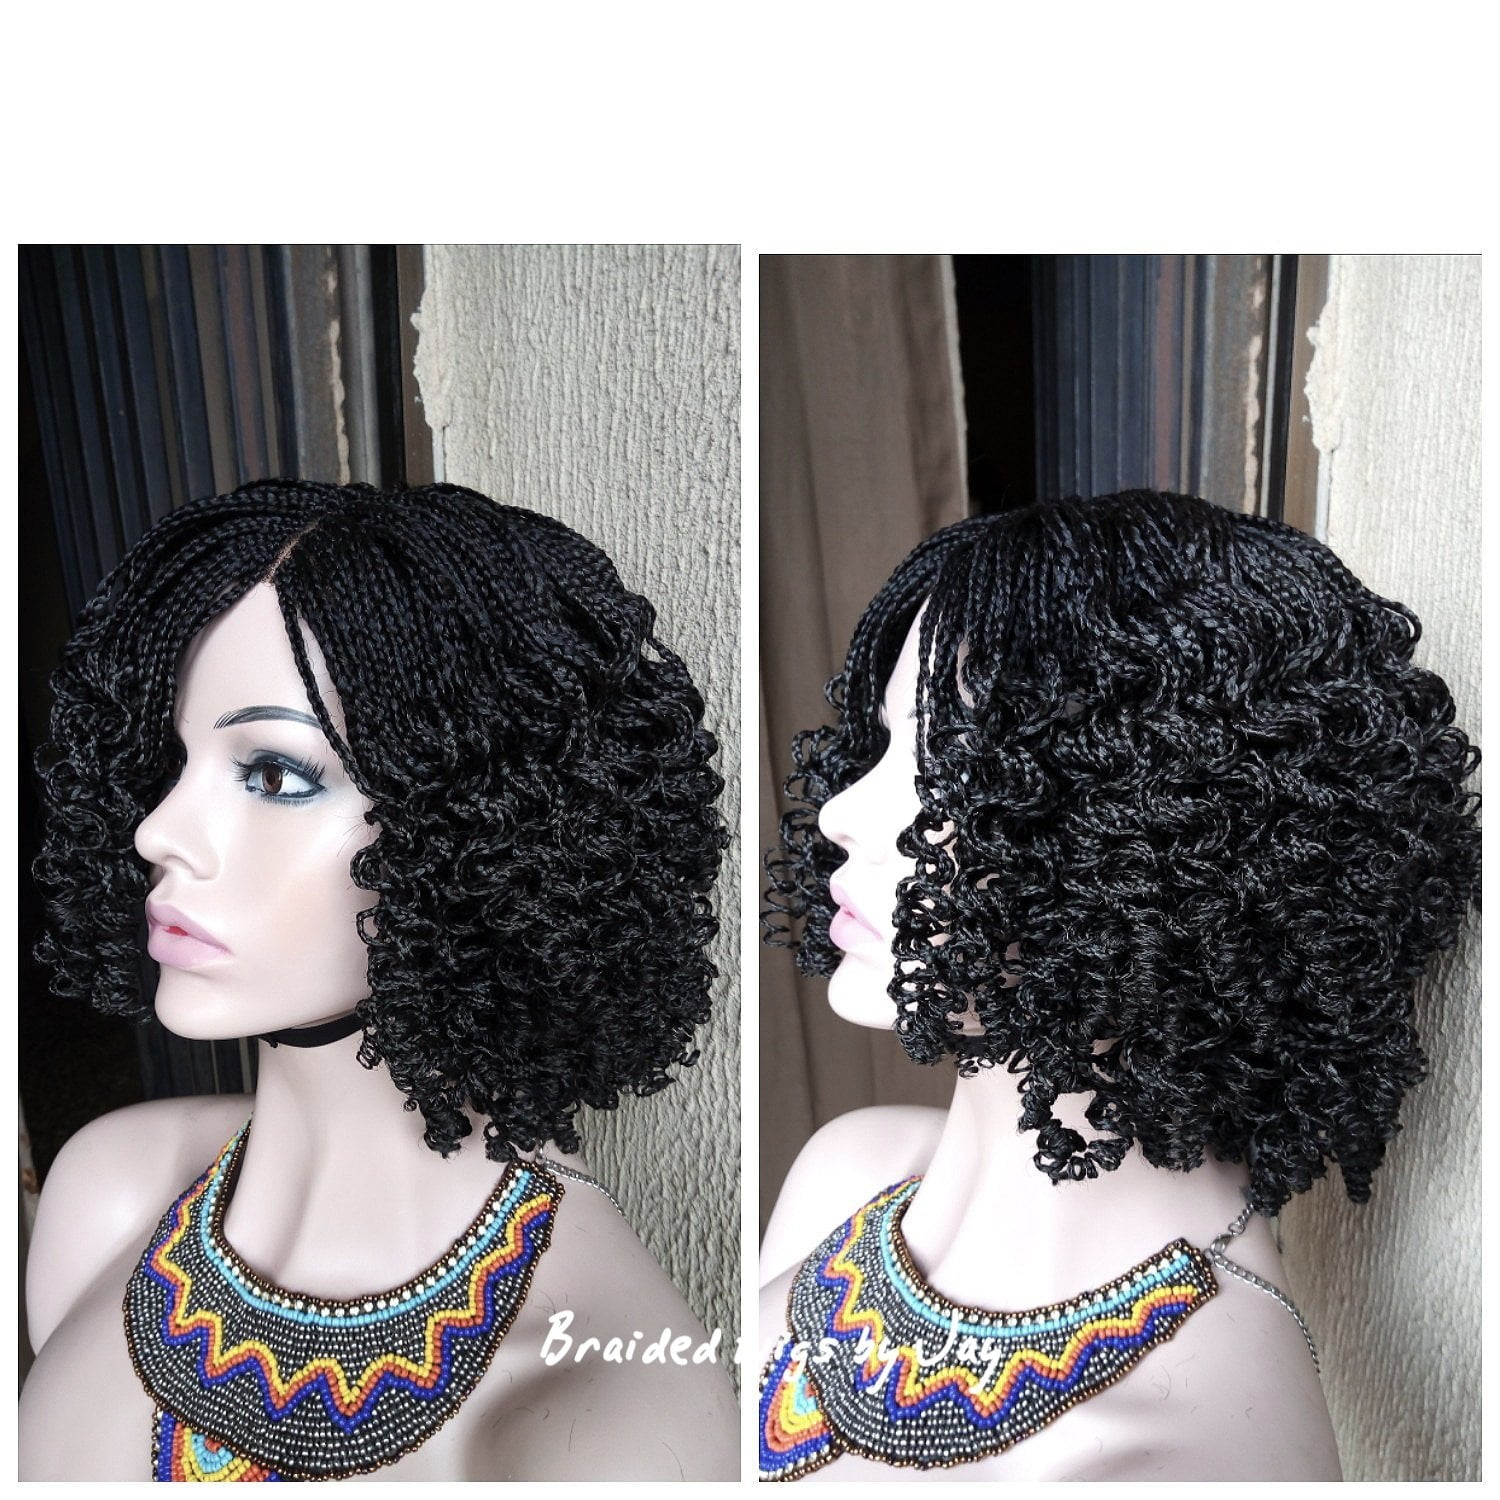 Talia Braided wig - Braided Wigs by Jay